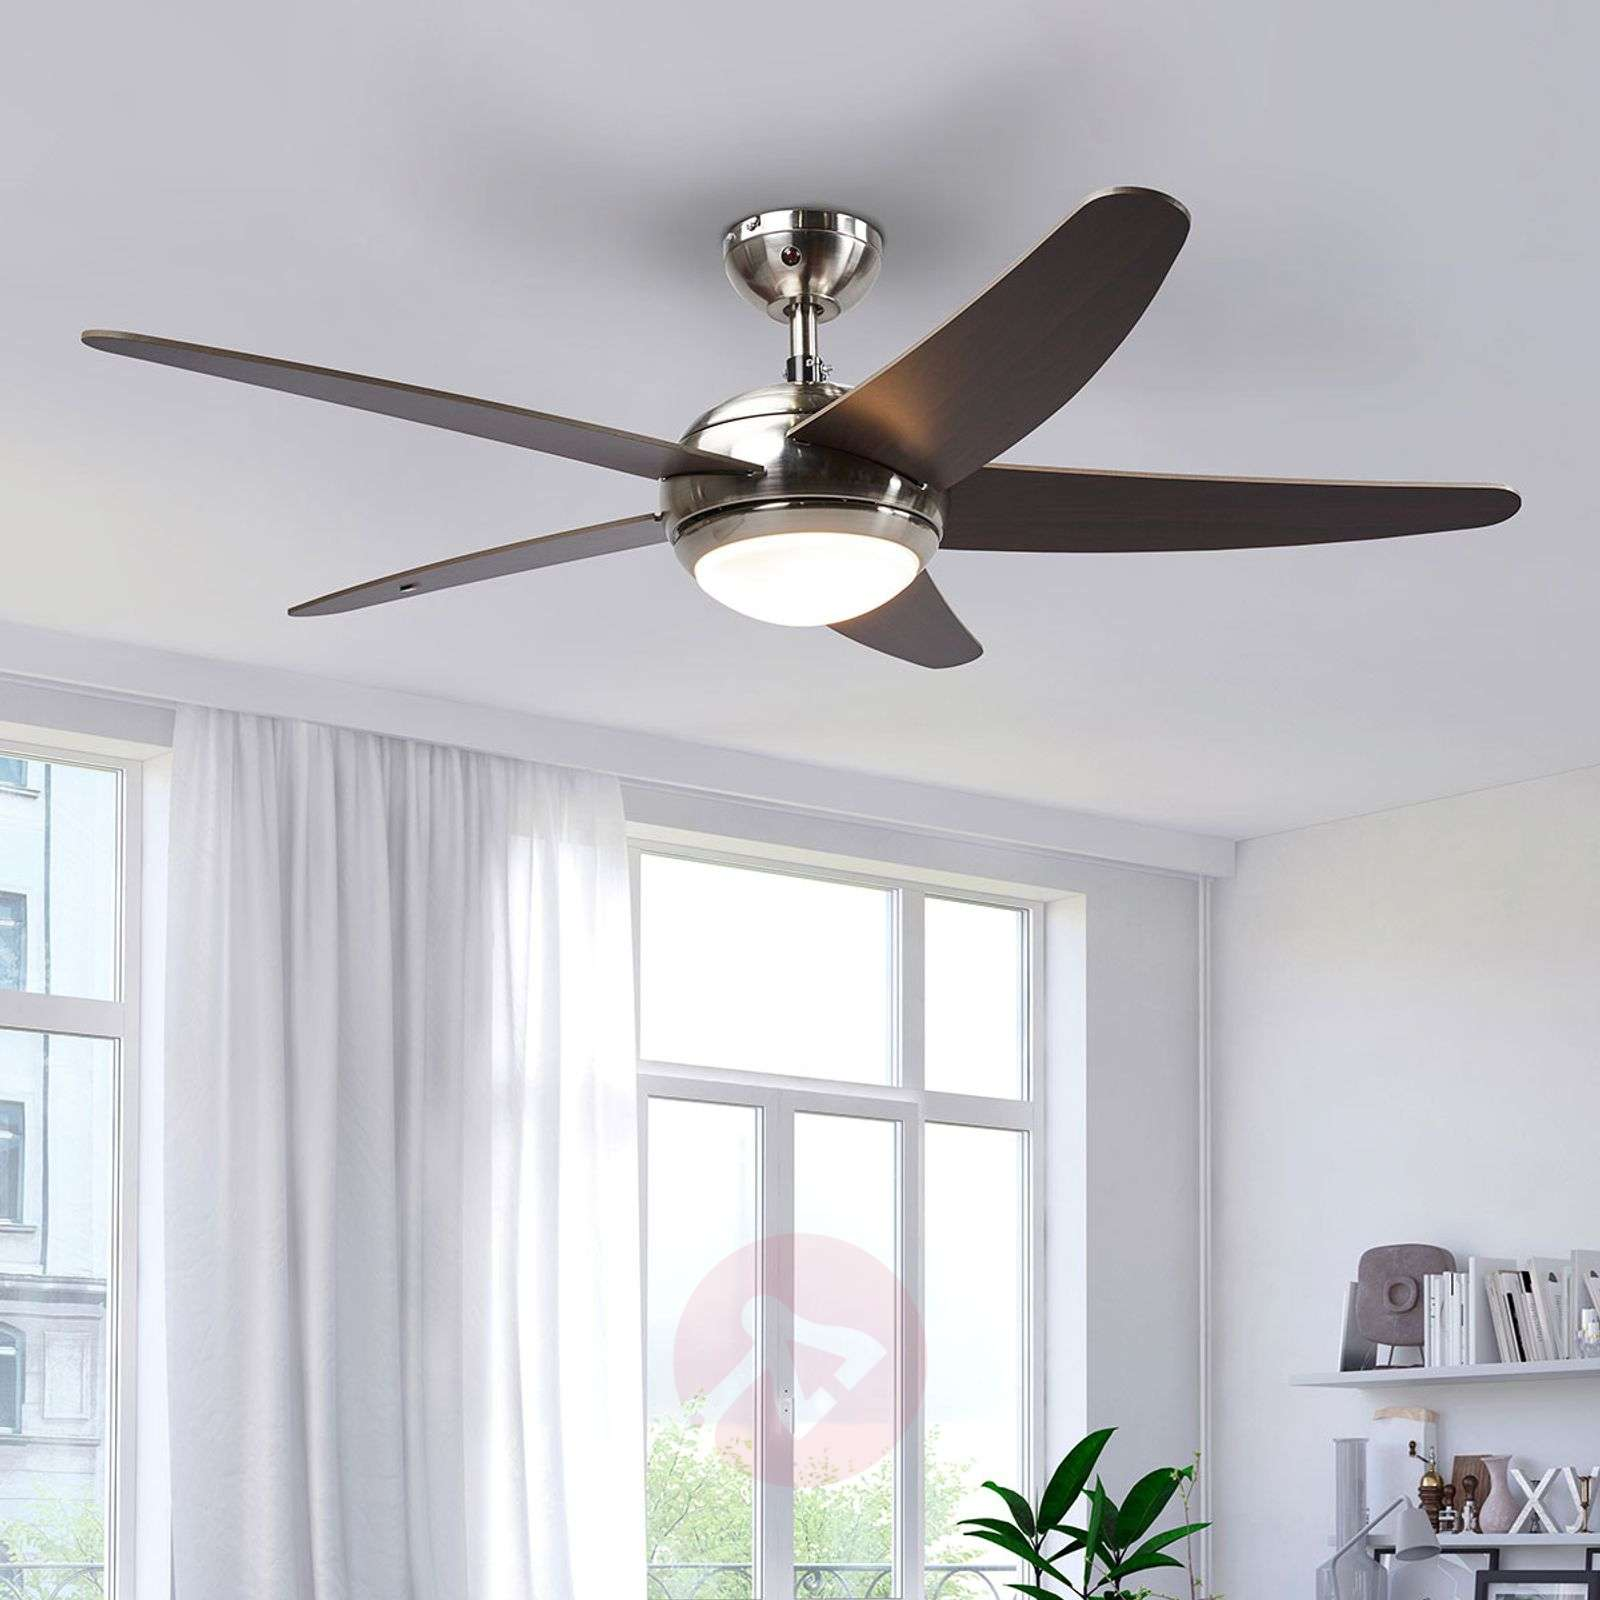 Anneka wenge-coloured ceiling fan with light-4018091-09